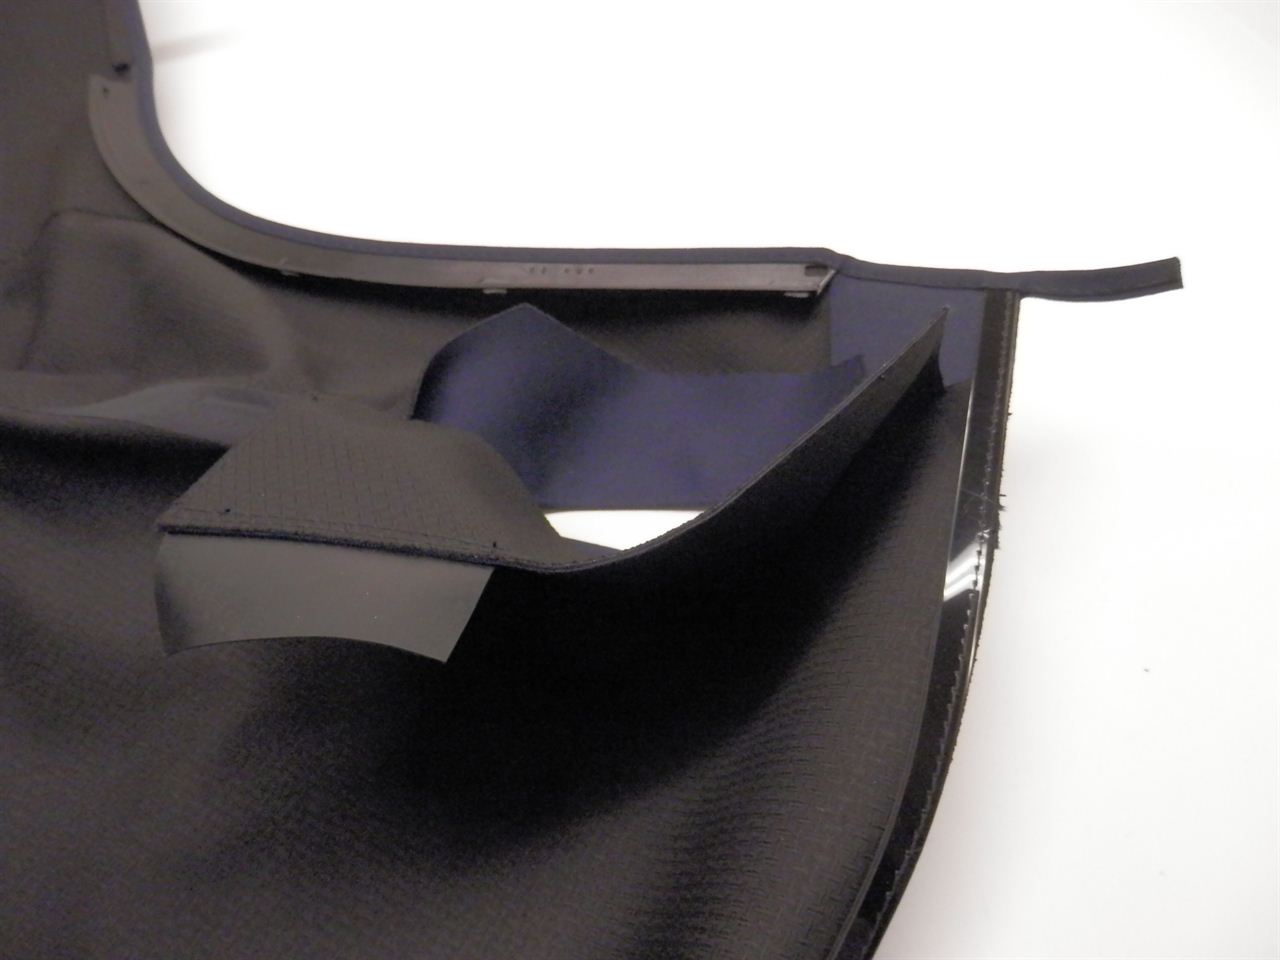 Z3 With Relief Pockets H256 Bmw Hoods Cabriolet Hoods